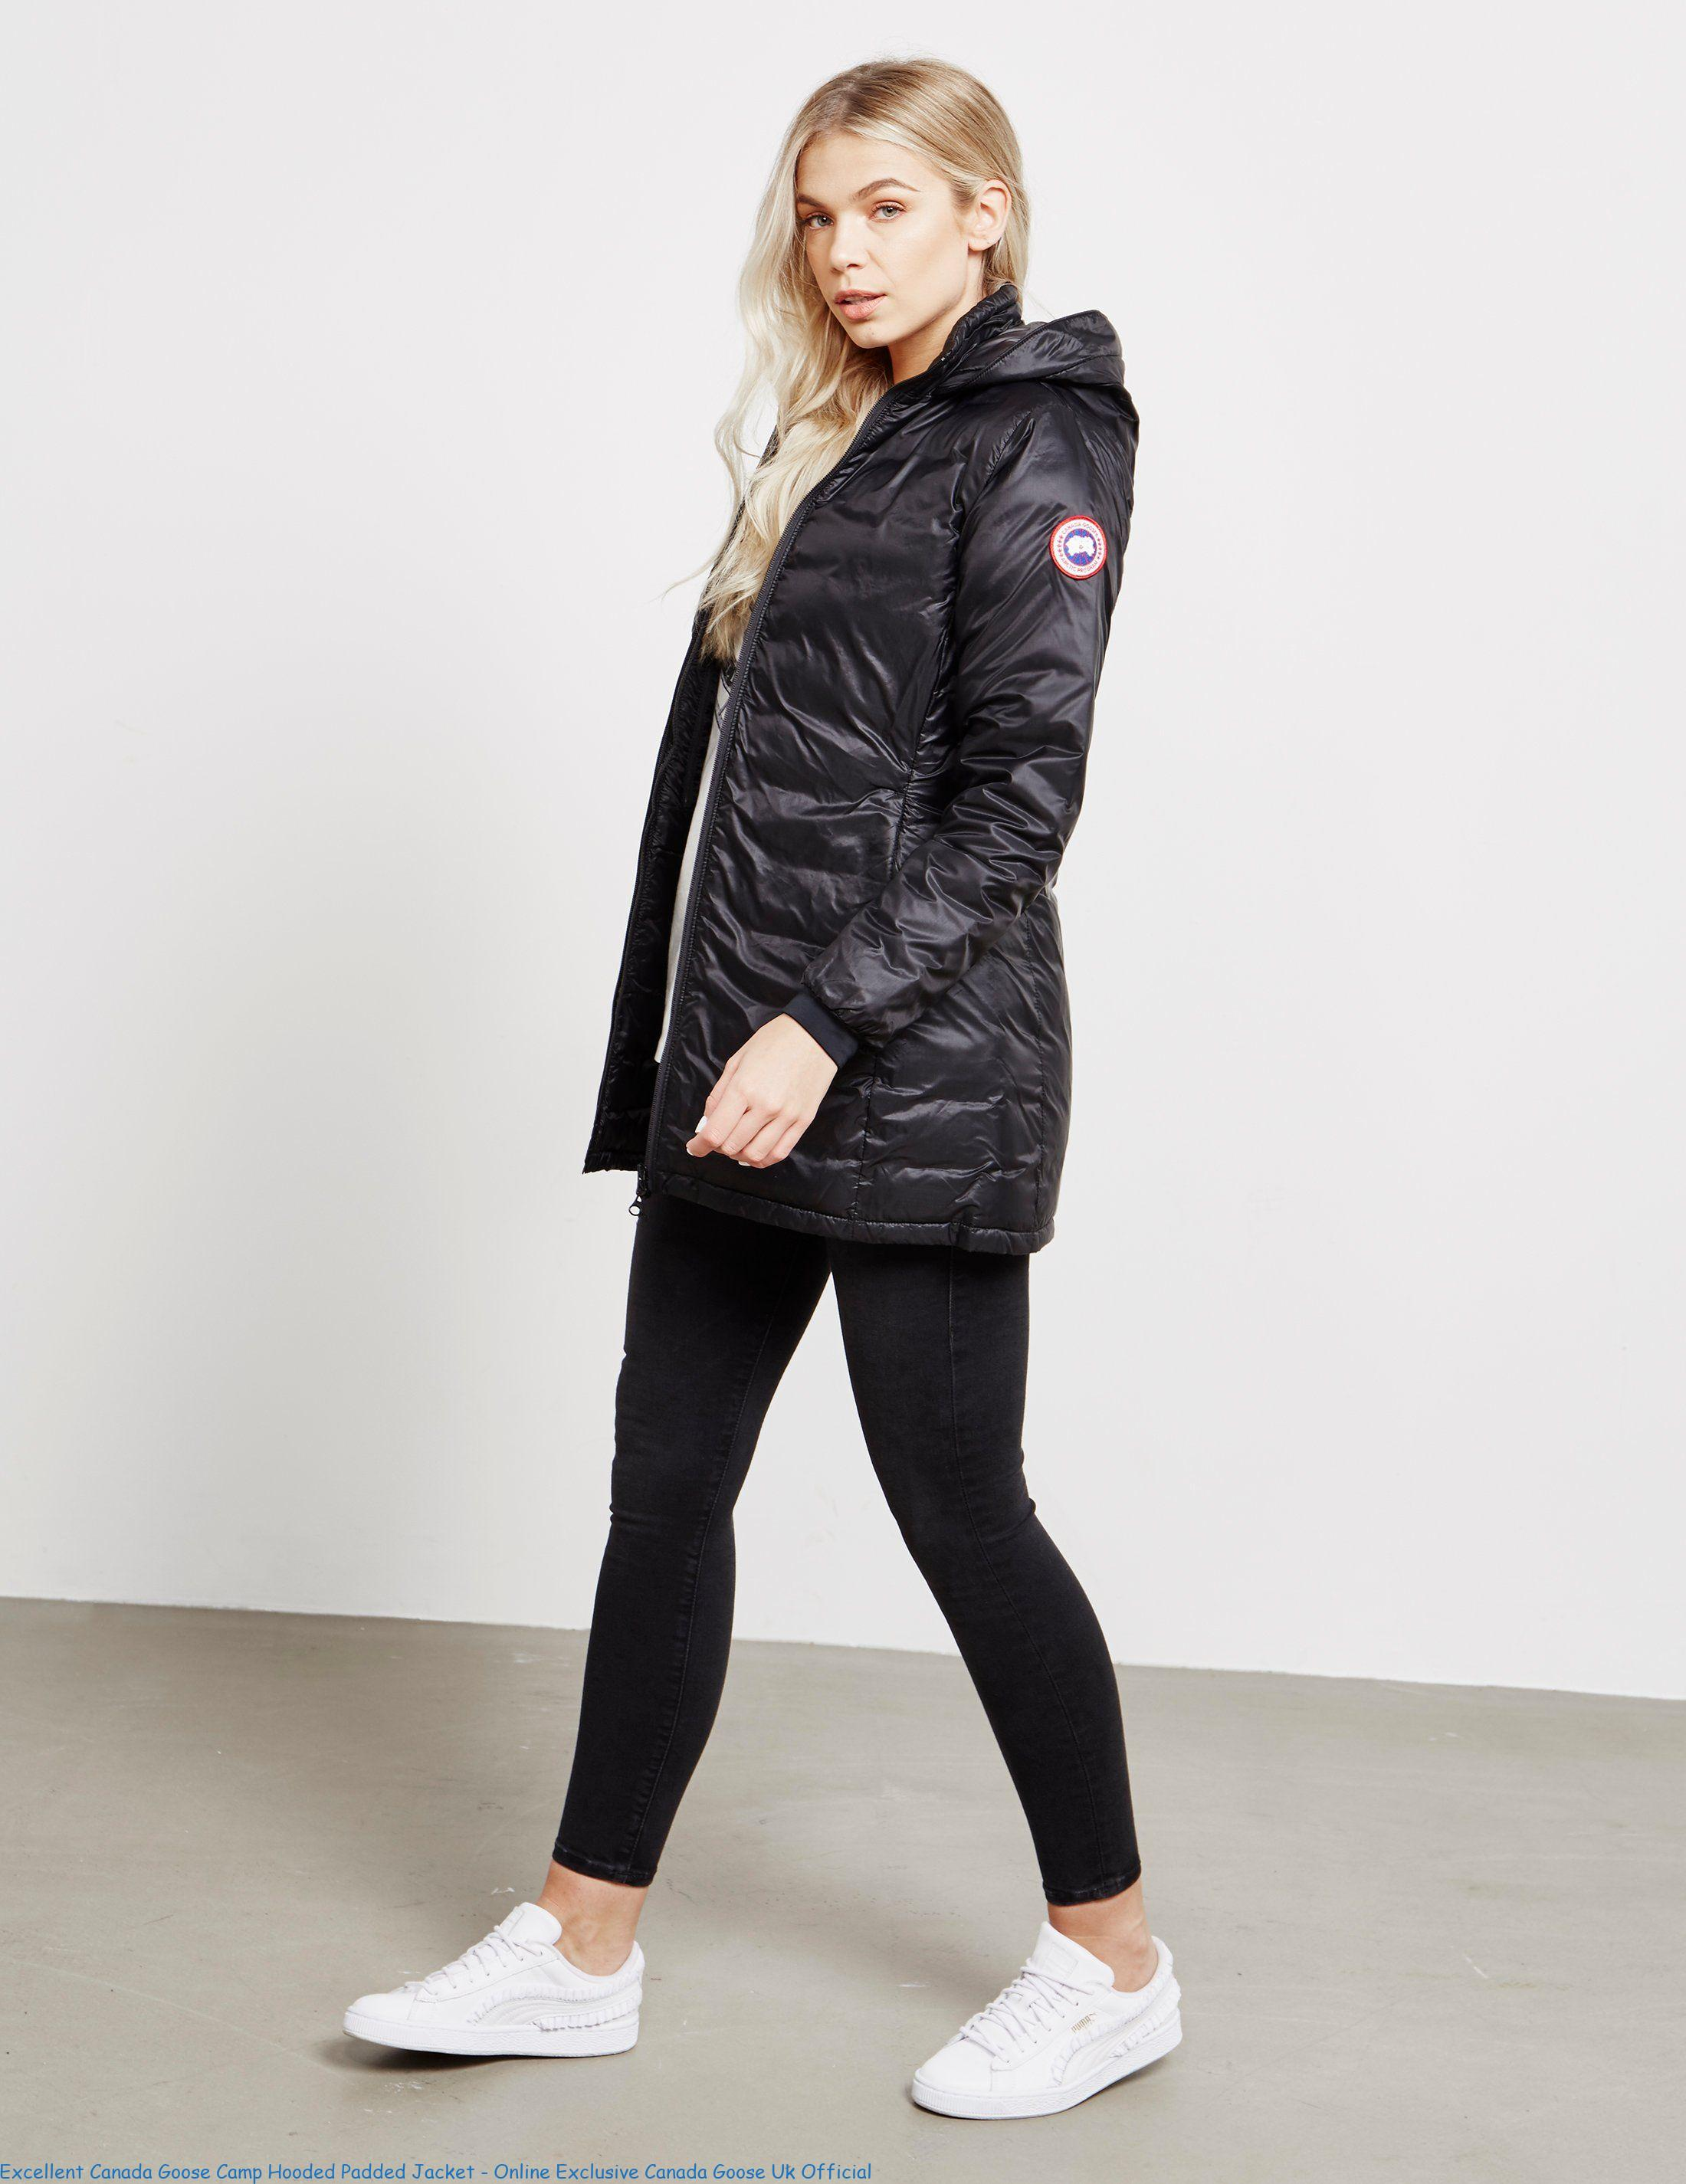 43fc4b3af50 Excellent Canada Goose Camp Hooded Padded Jacket – Online Exclusive Canada  Goose Uk Official – Canada Goose UK Outlet | Cheap Canada Goose Jackets,Coats  ...